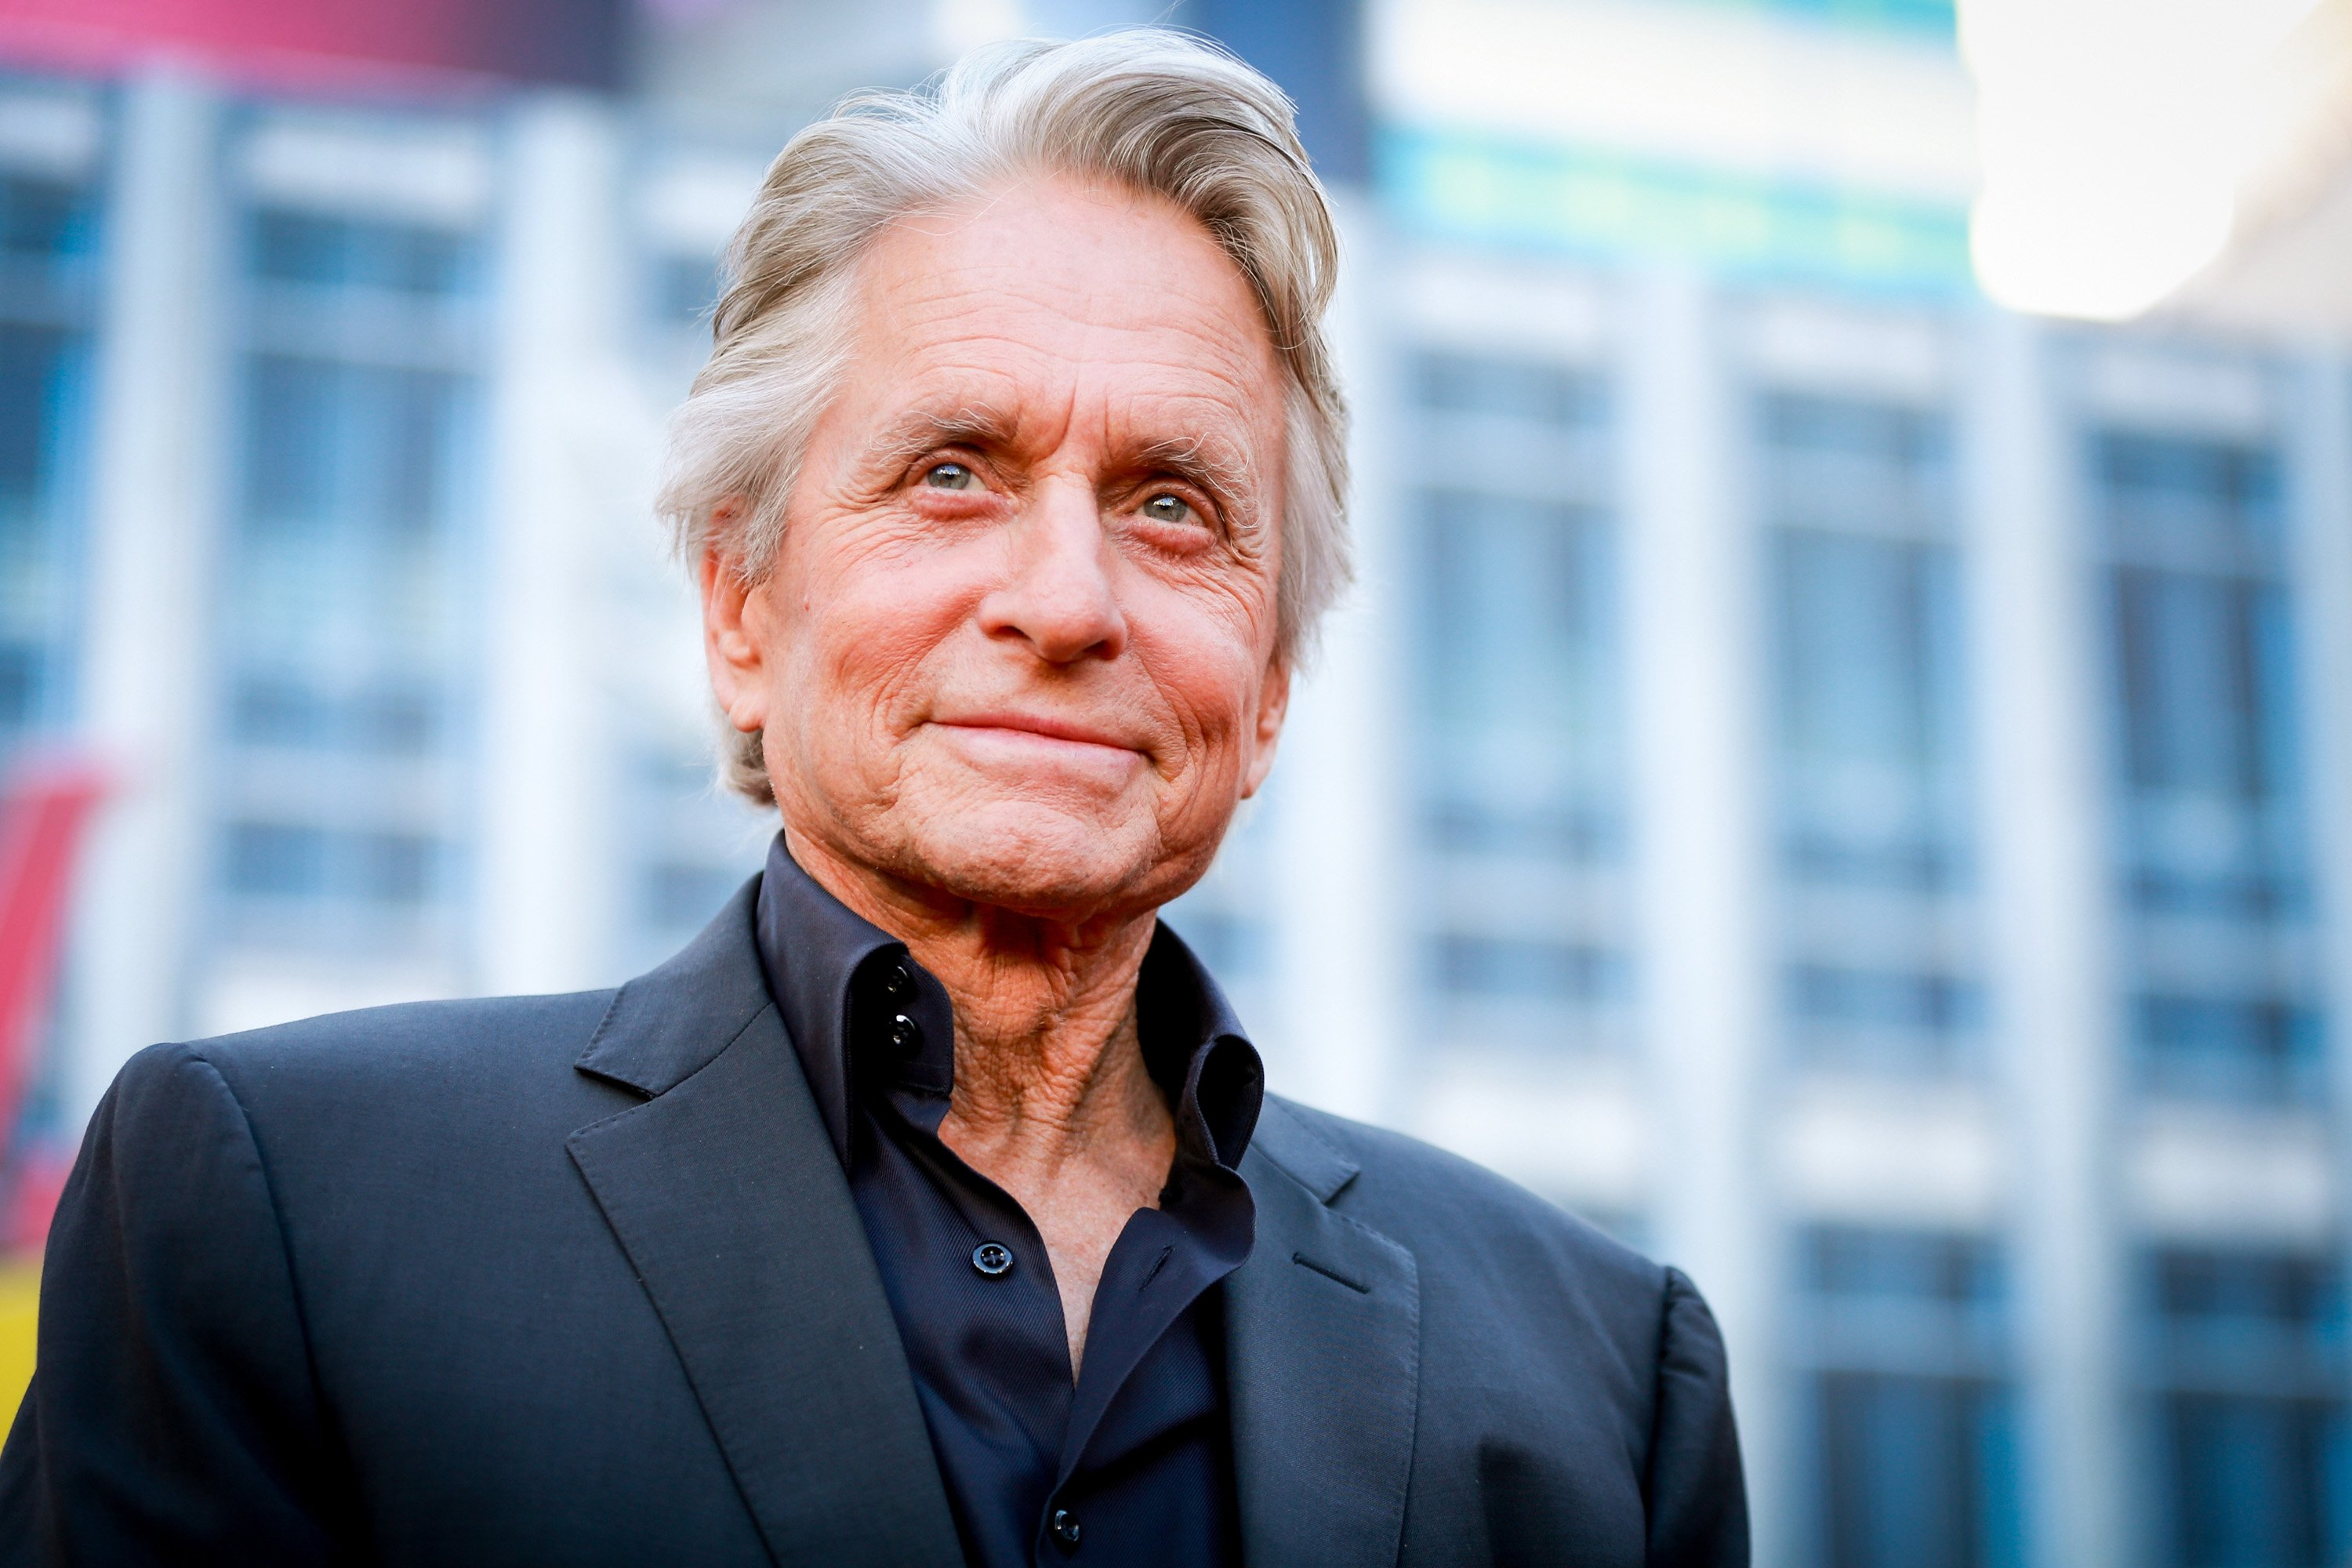 Michael Douglas attends the premiere of Disney And Marvel's 'Ant-Man And The Wasp' on June 25, 2018  | Photo: GettyImages